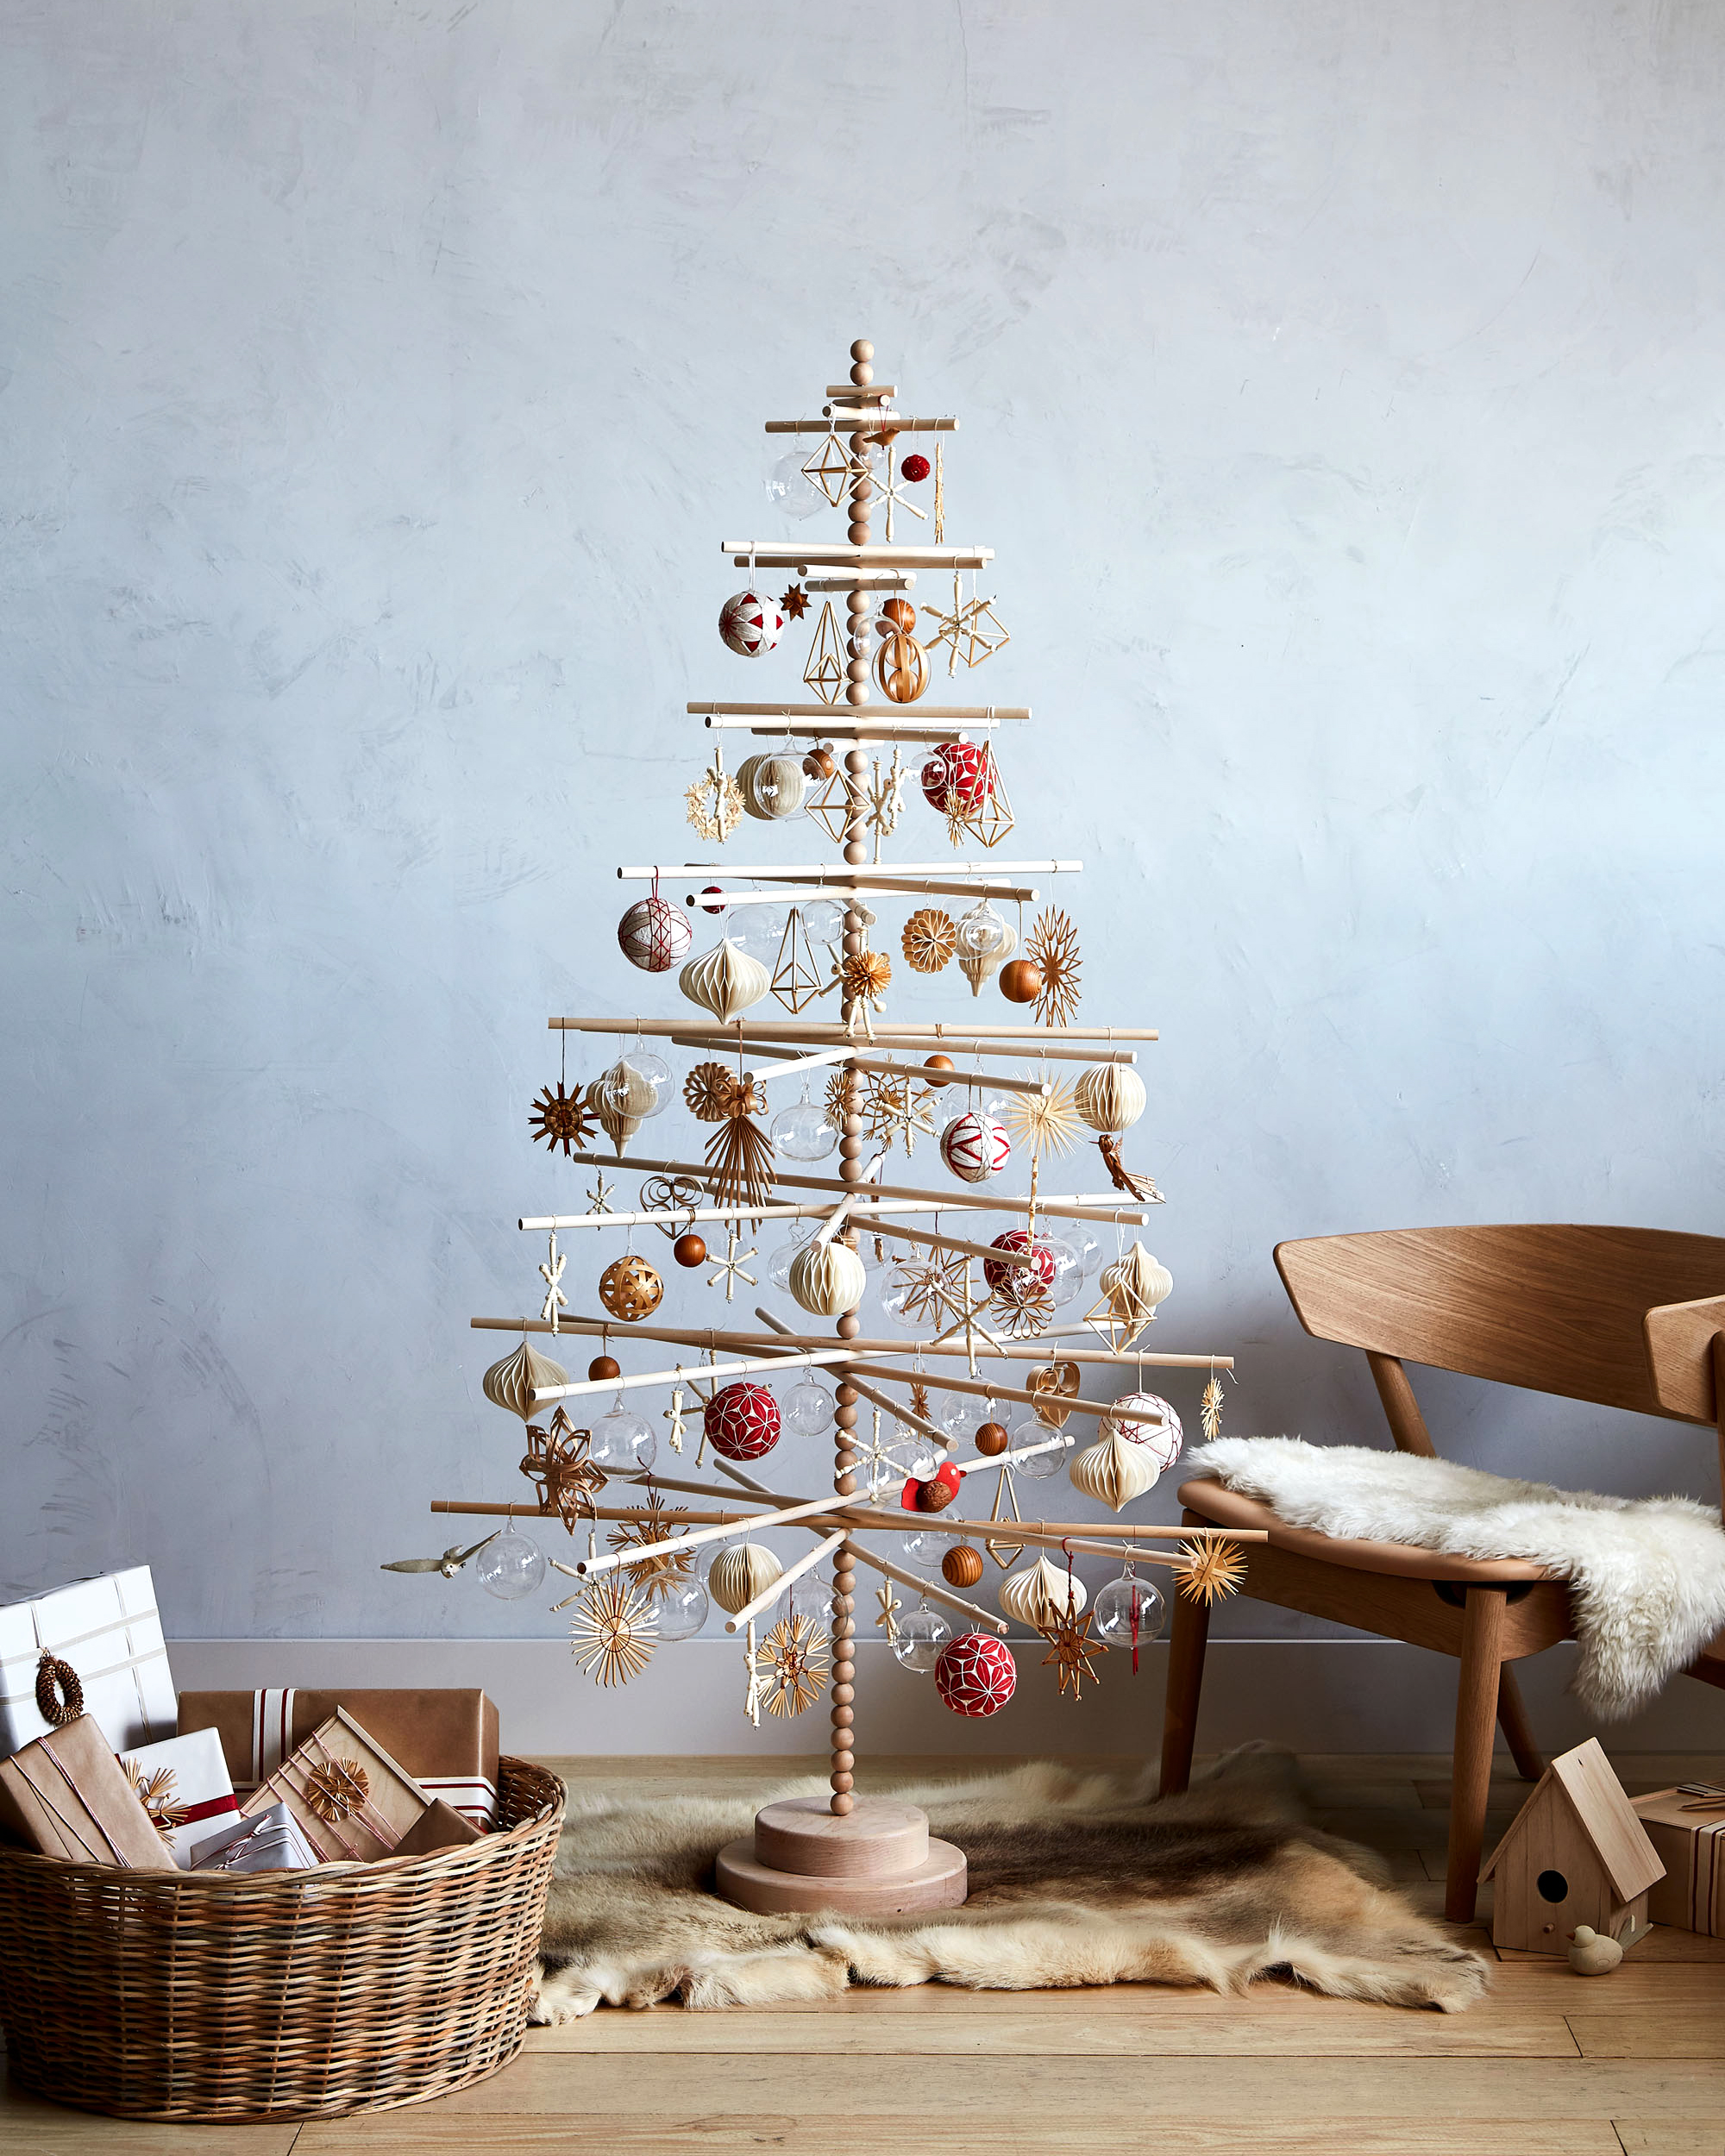 How To Decorate A Wooden Christmas Tree In Scandinavian Style Martha Stewart